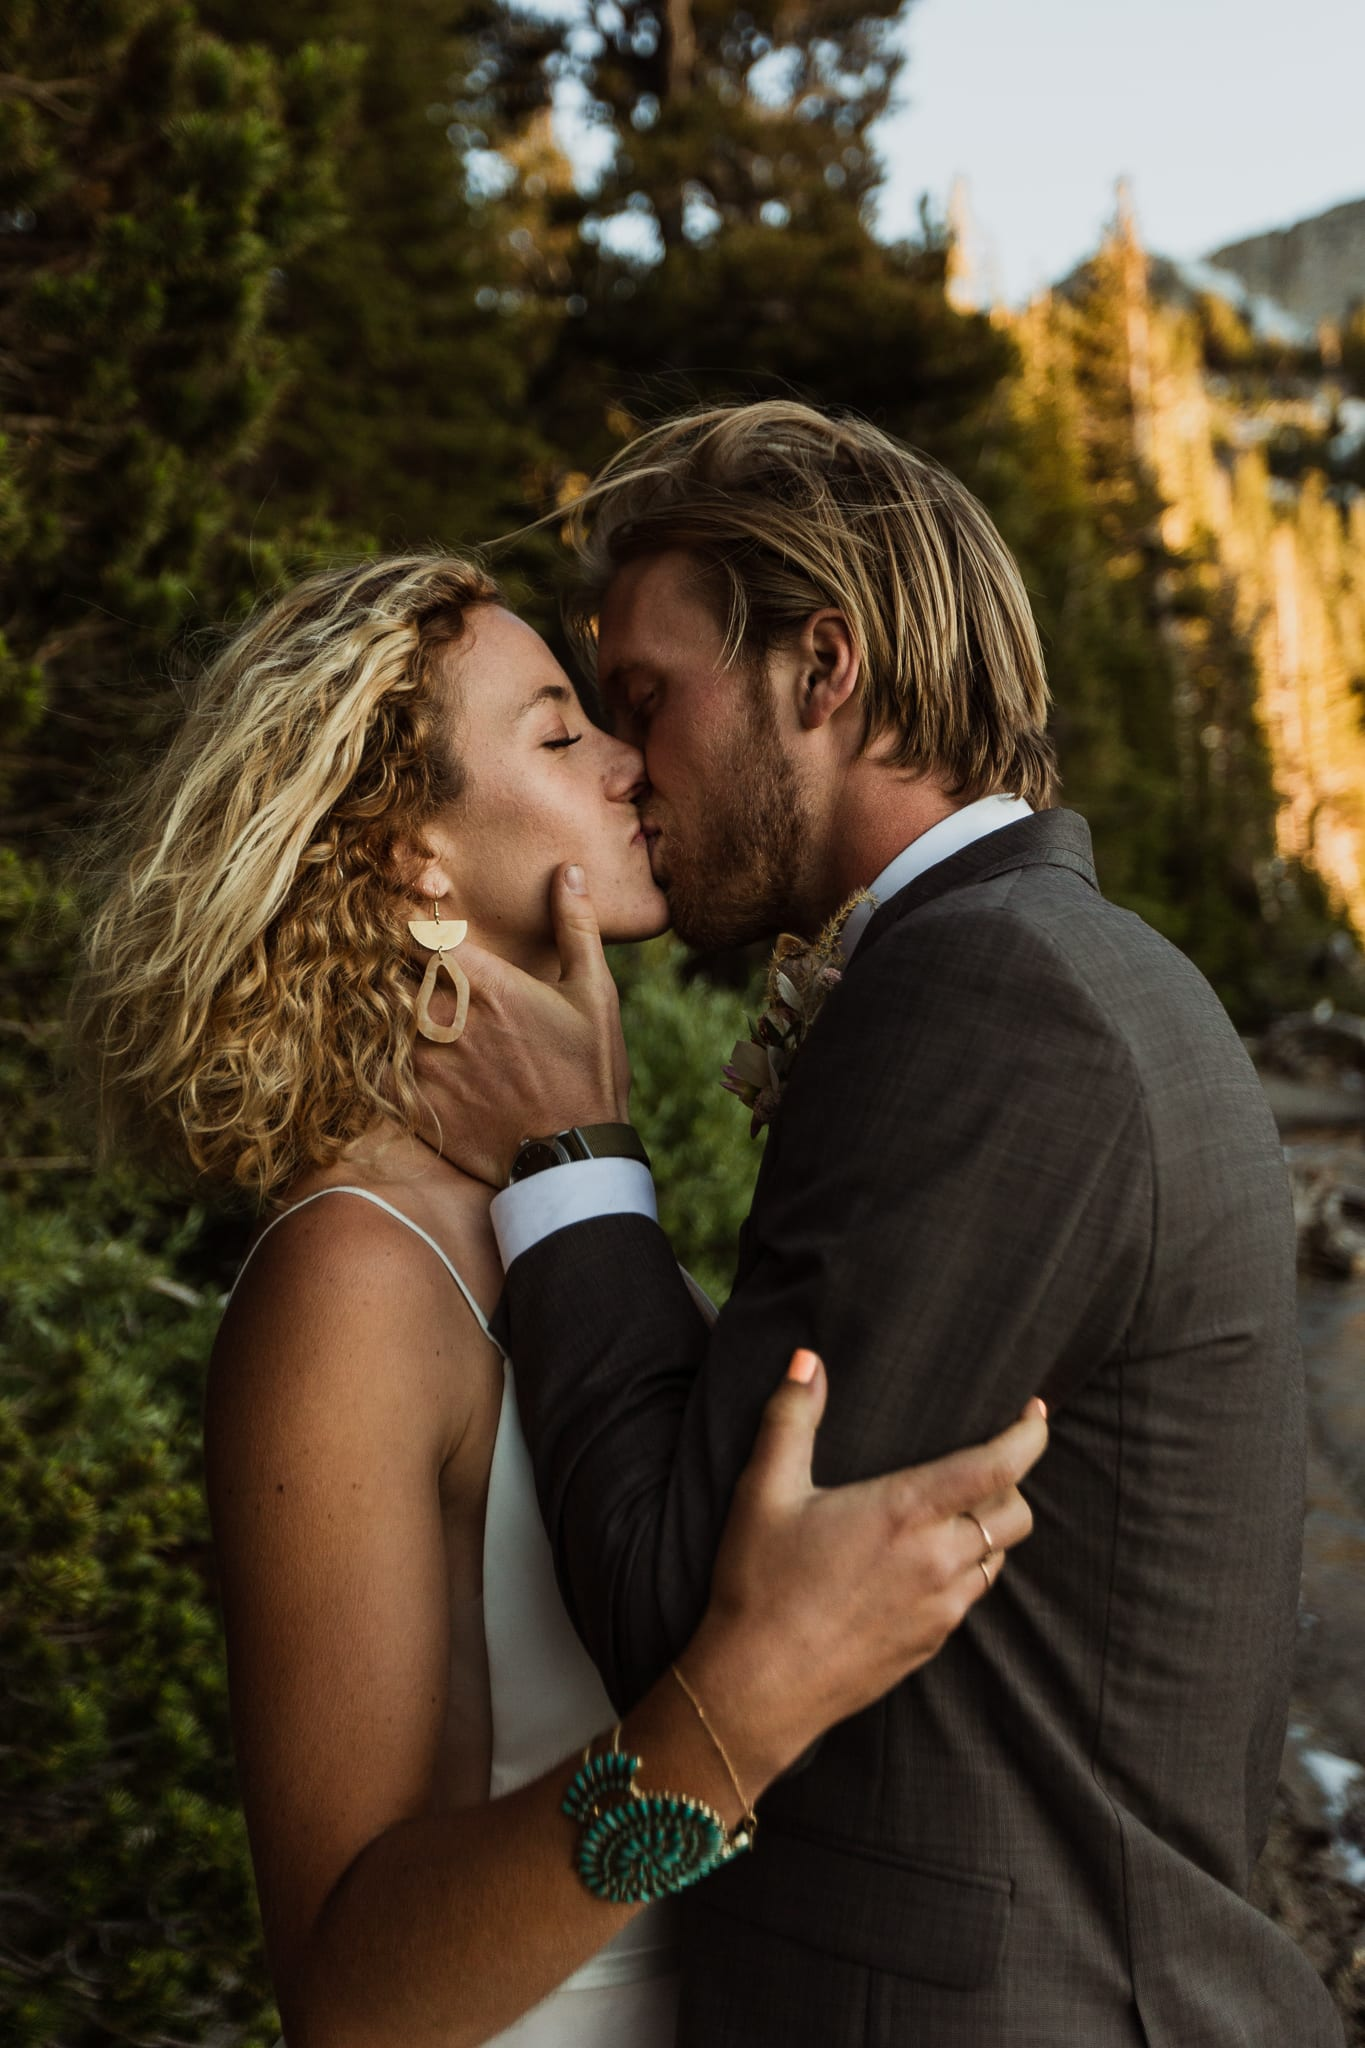 Tyler and Haylee kiss passionately as they celebrate their adventure elopement.